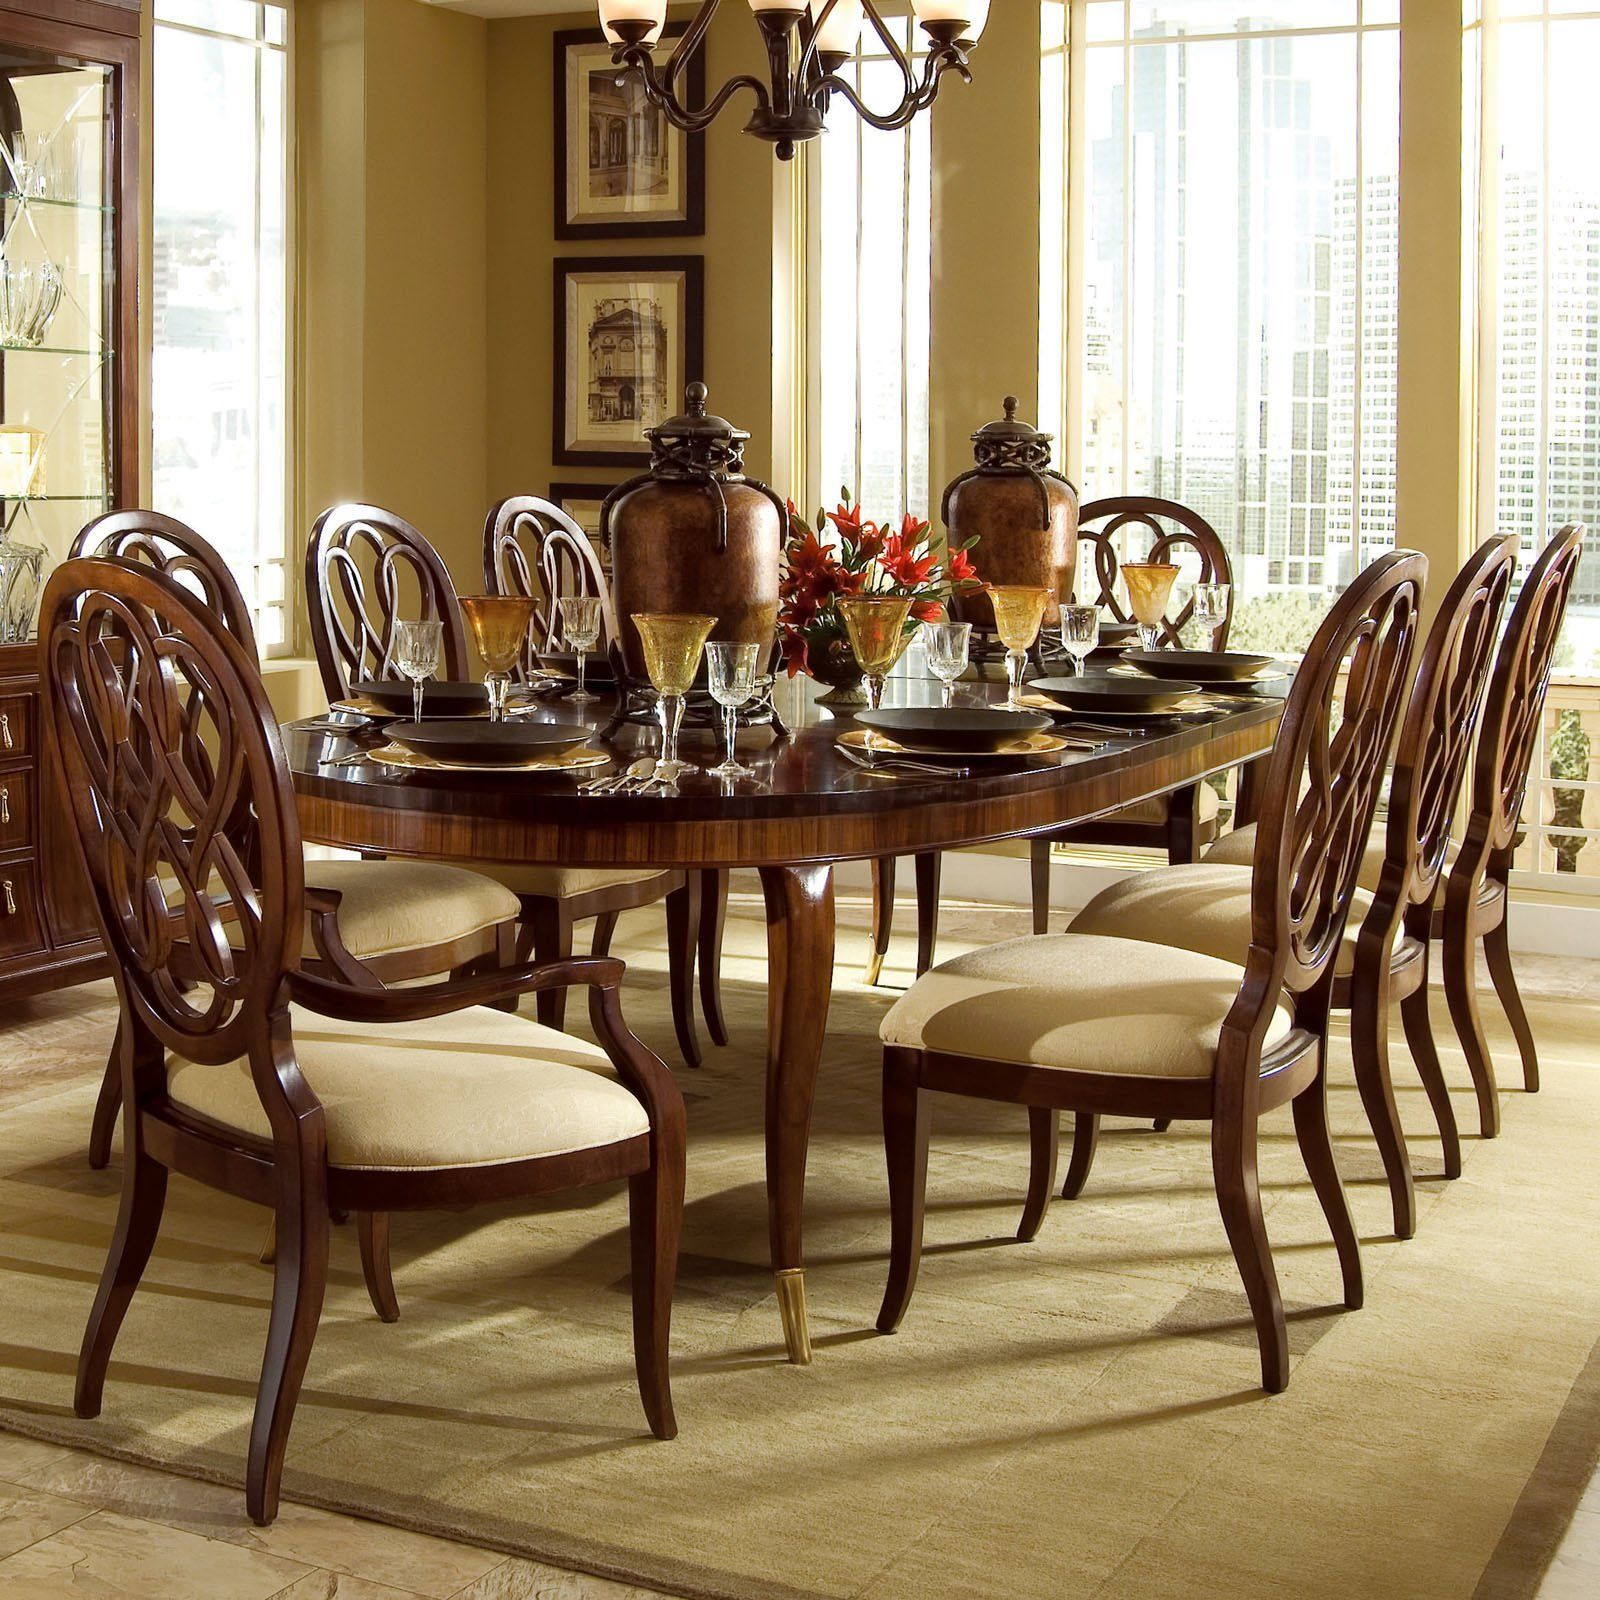 American Drew Bob Mackie Signature 9 pc. Oval Dining Table ...